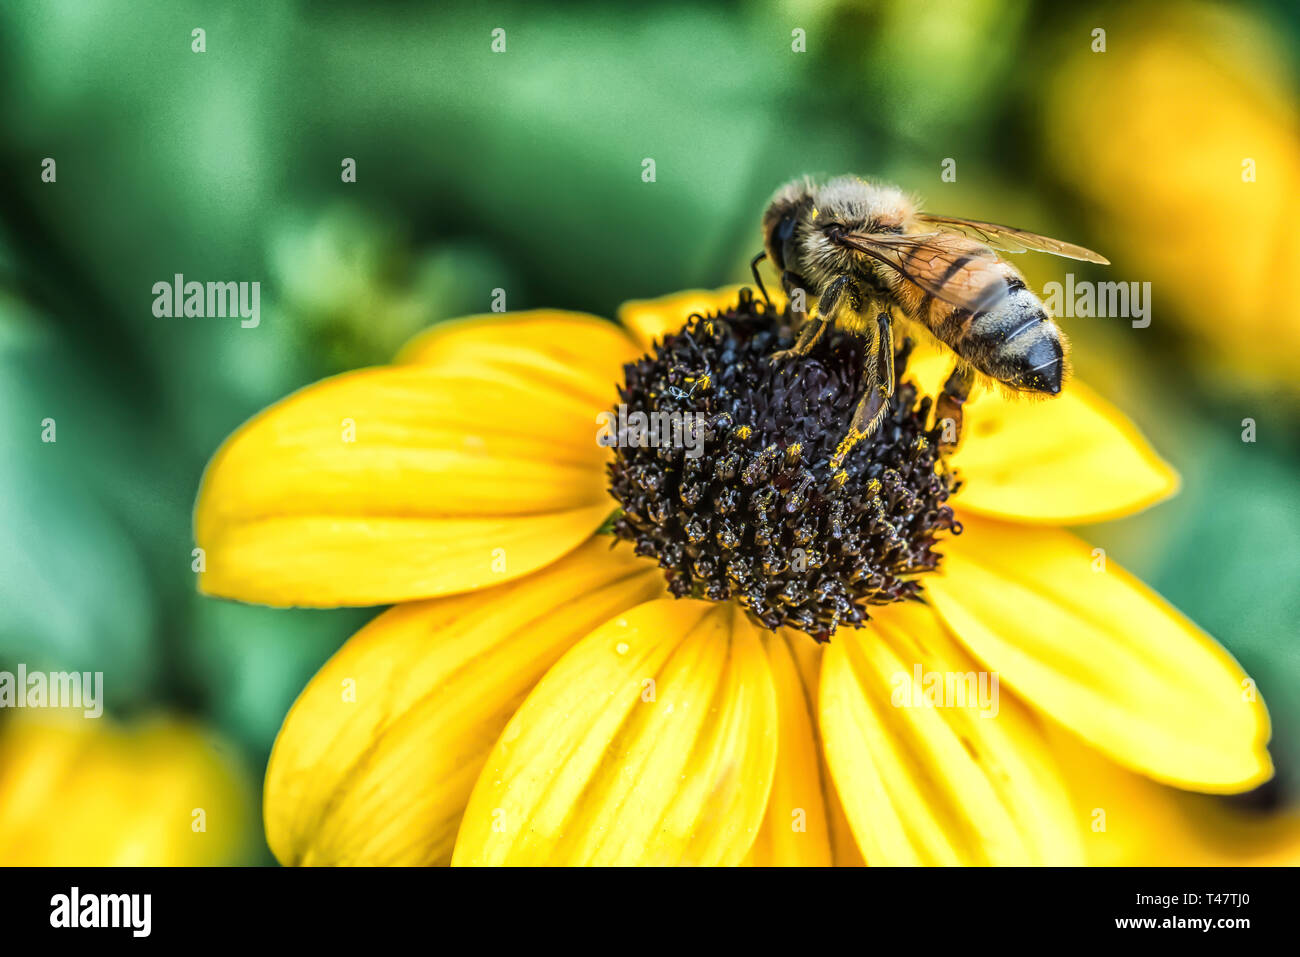 Busy Bee - Stock Image